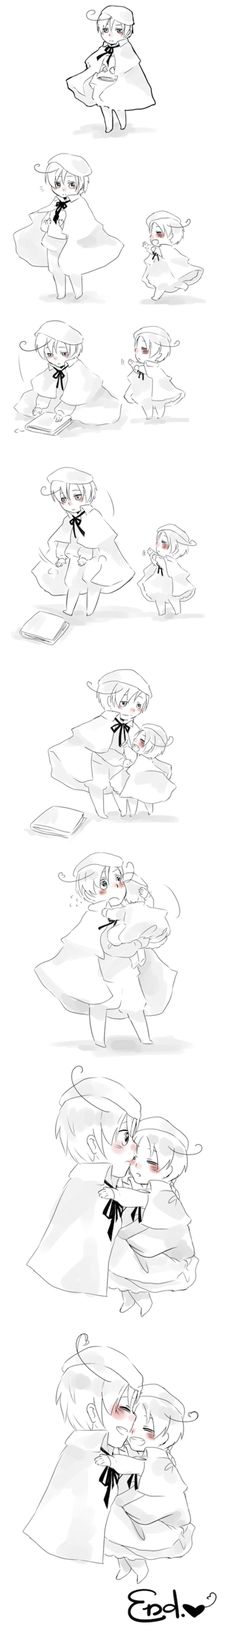 Hold me, Fratello by Houdidoo.deviantart.com on @deviantART - Little Lovino and an even littler Feliciano - this is so sweet!